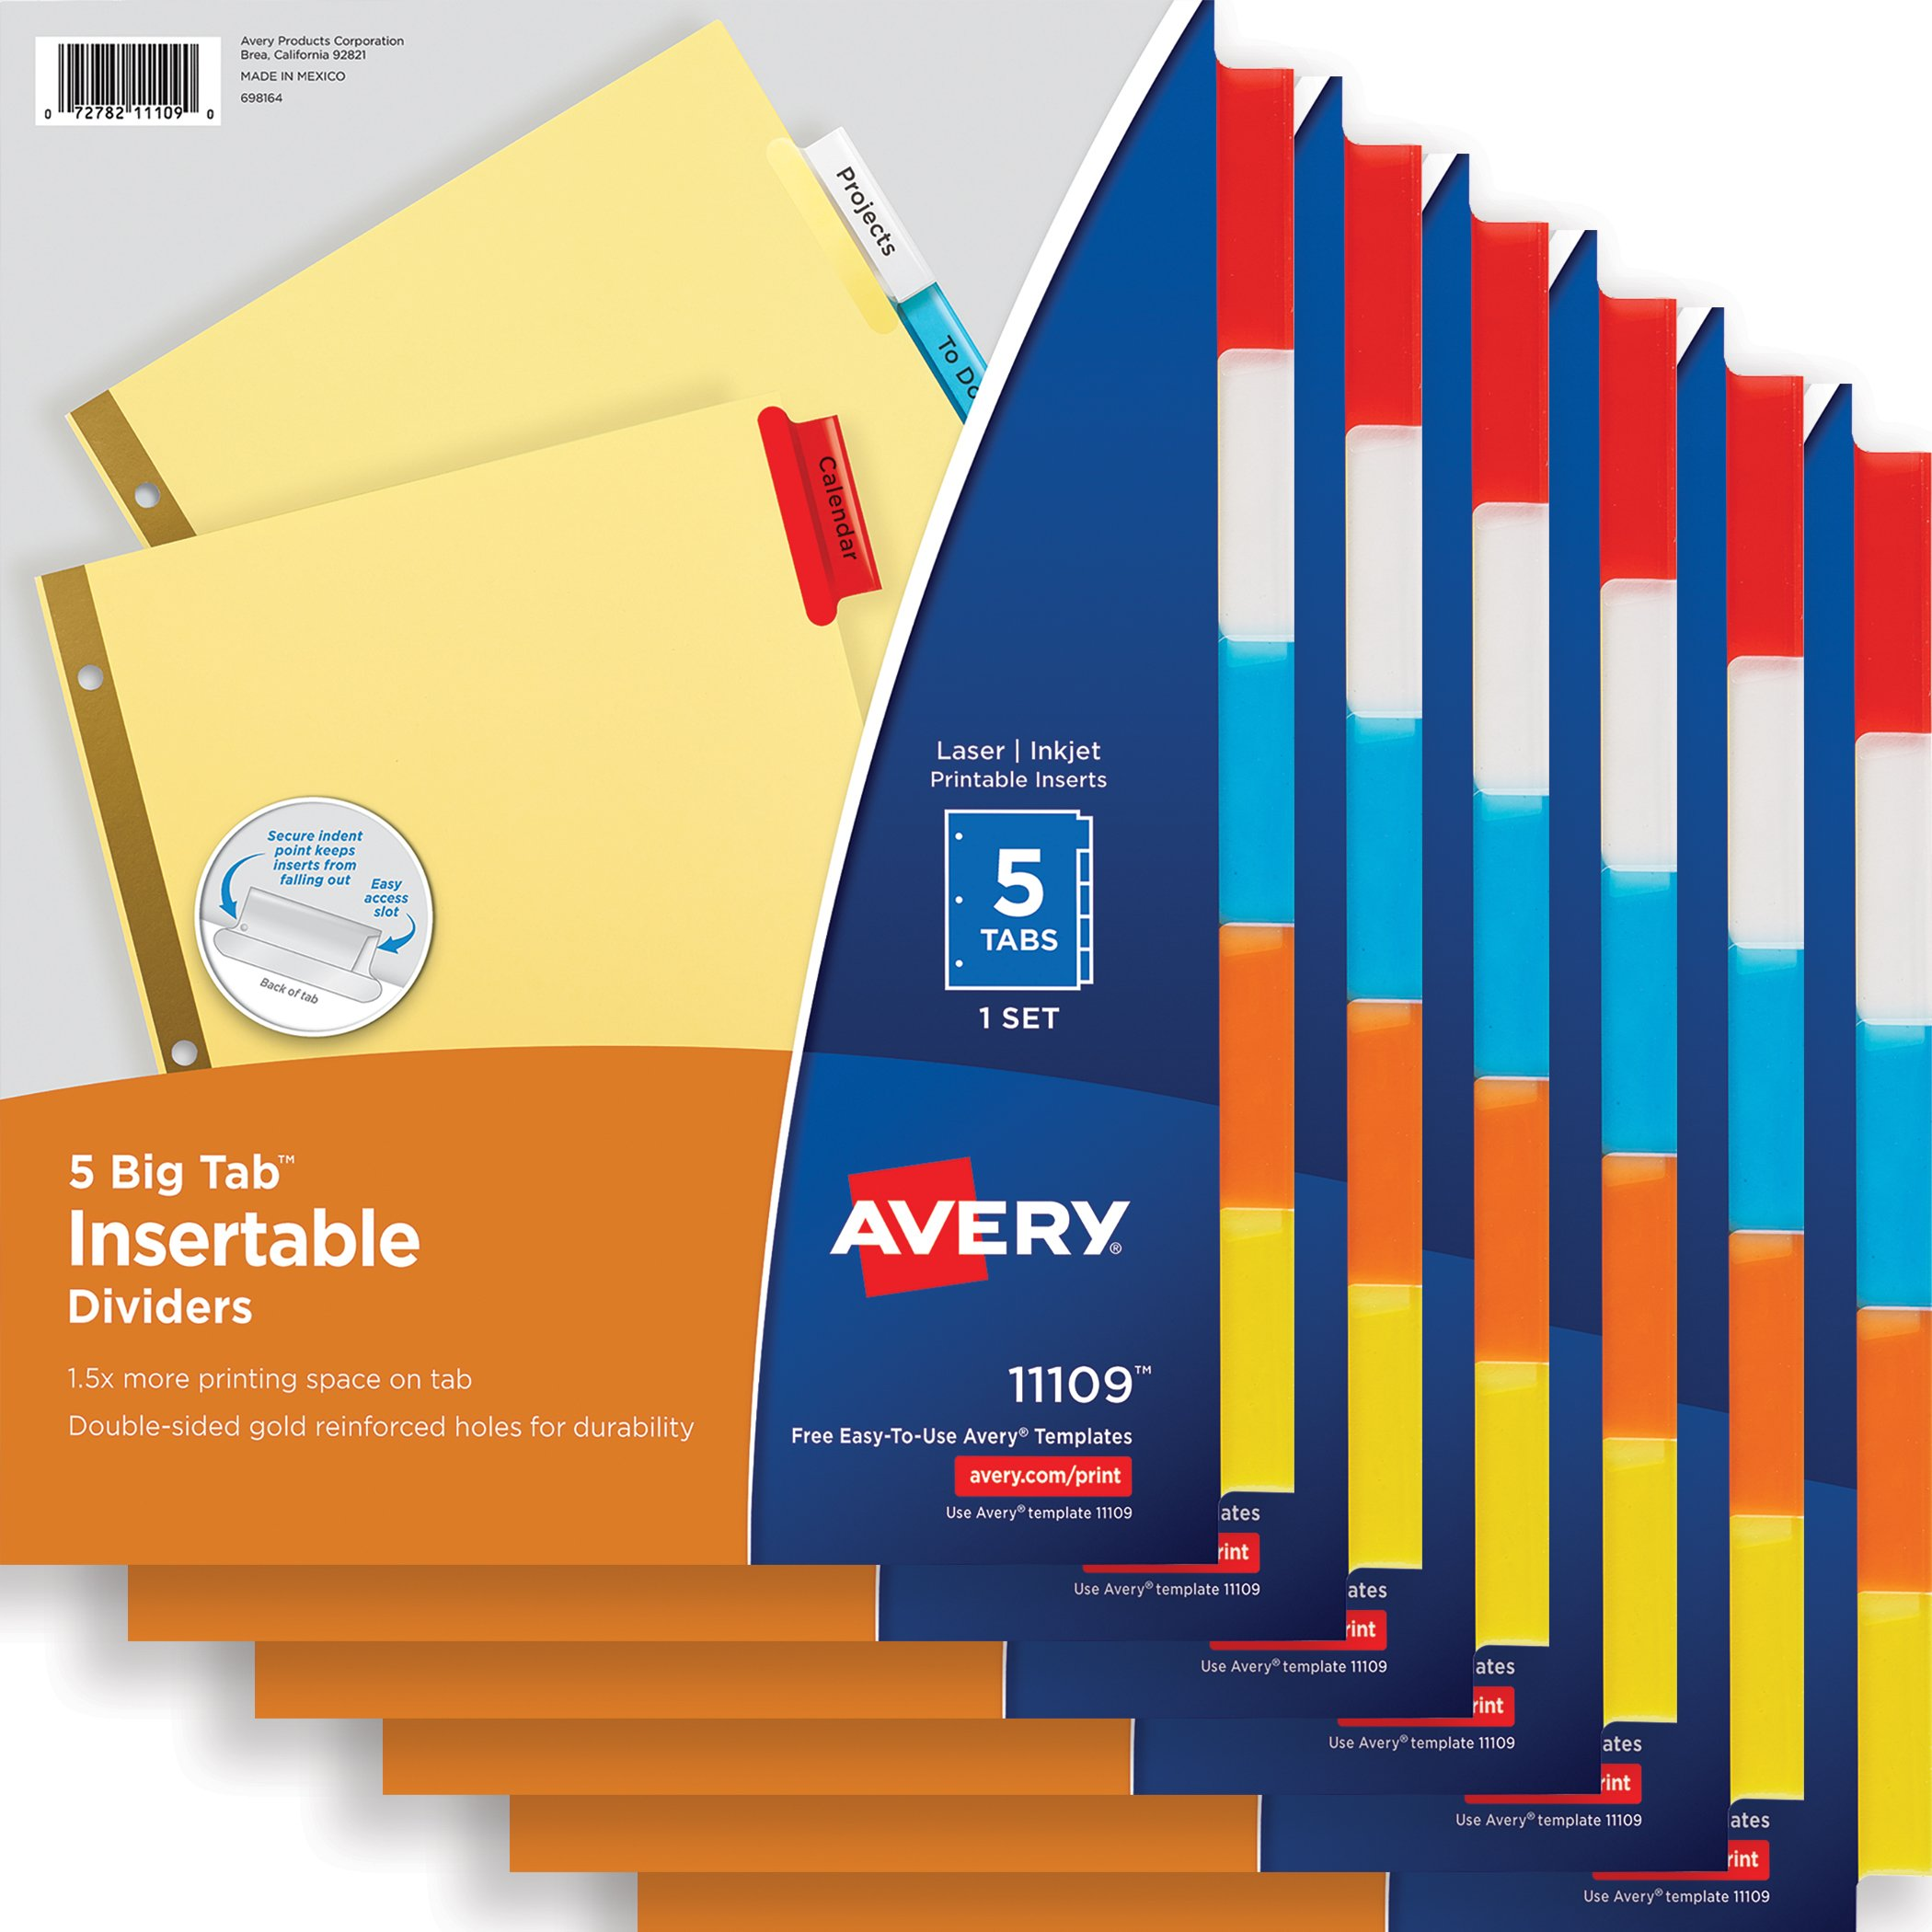 Avery Big Tab Insertable Dividers, Buff Paper, 5-Tab Set, Multicolor, Multi Pack of 6 Sets (11109)